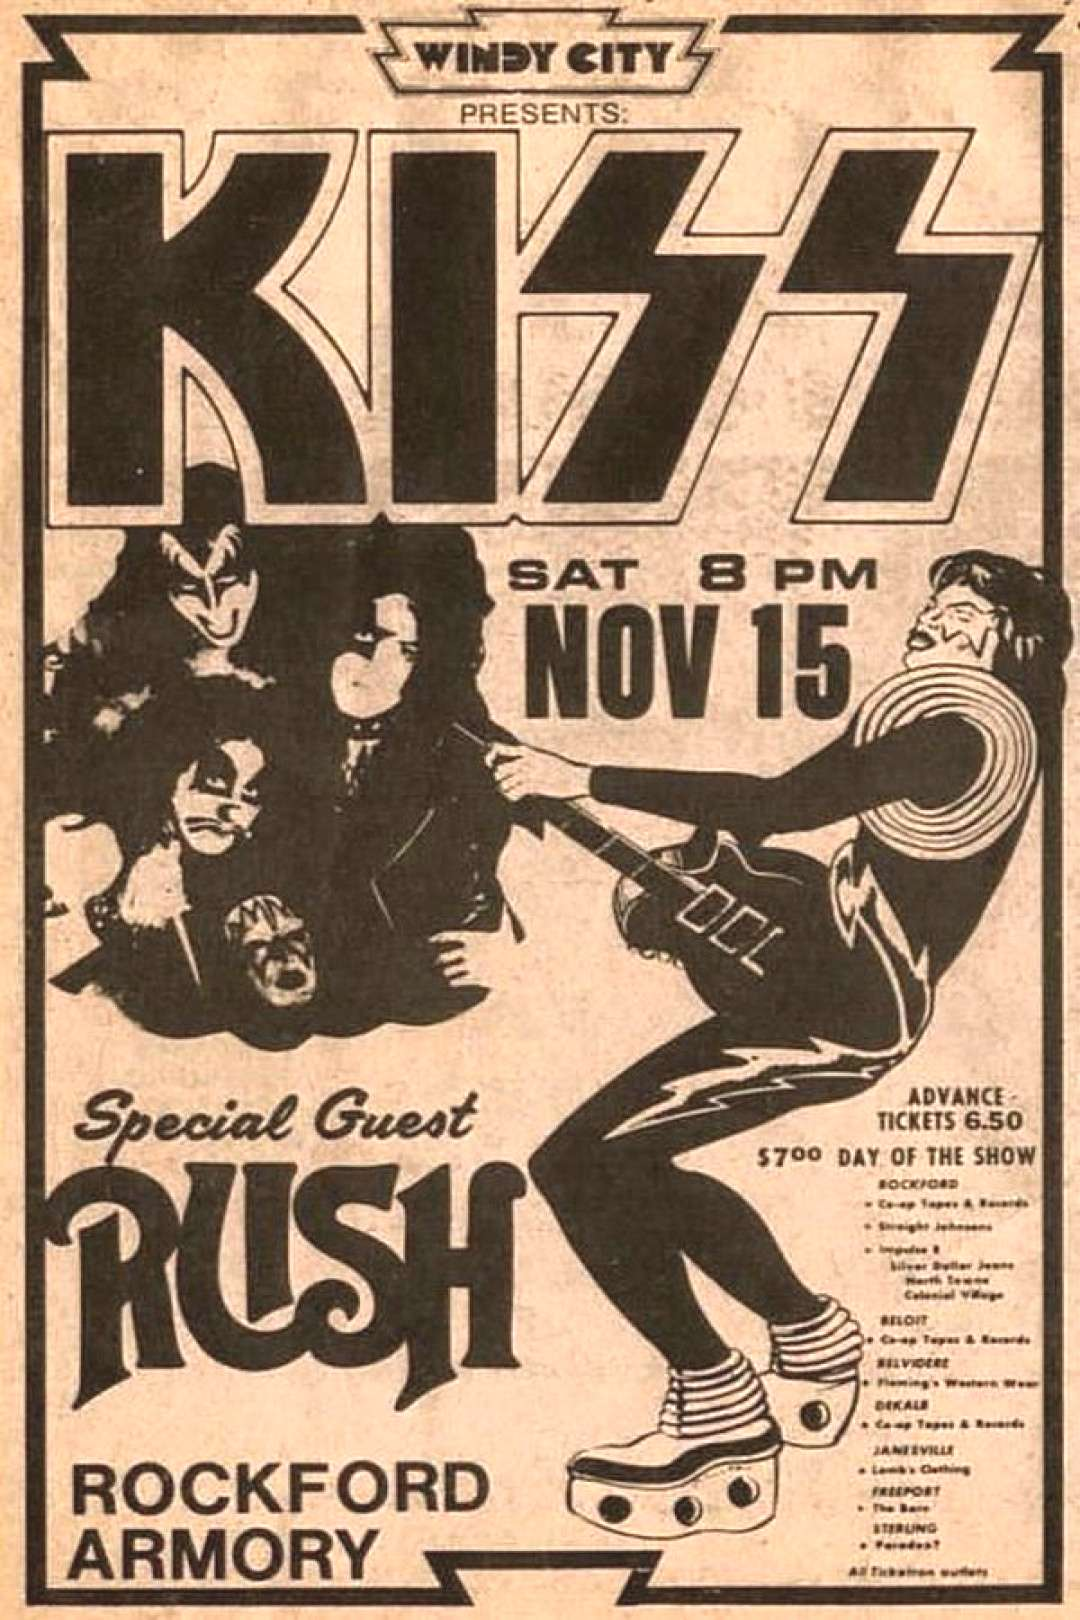 Concert Poster – KISS with Rush Concert Poster – KISS with Rush